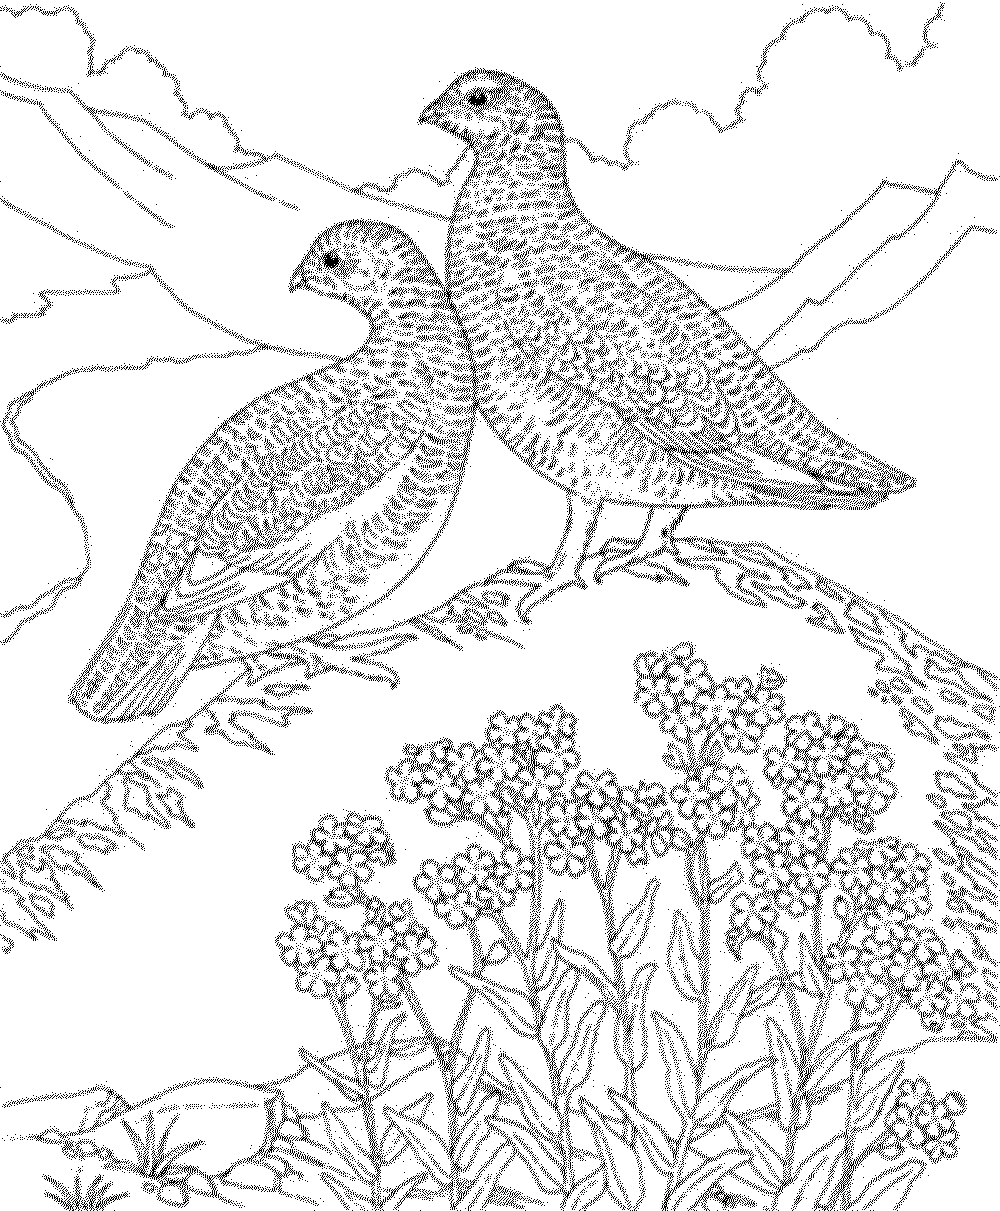 bird coloring pages for adults hard bird coloring pages for adults bestappsforkidscom for coloring adults bird pages